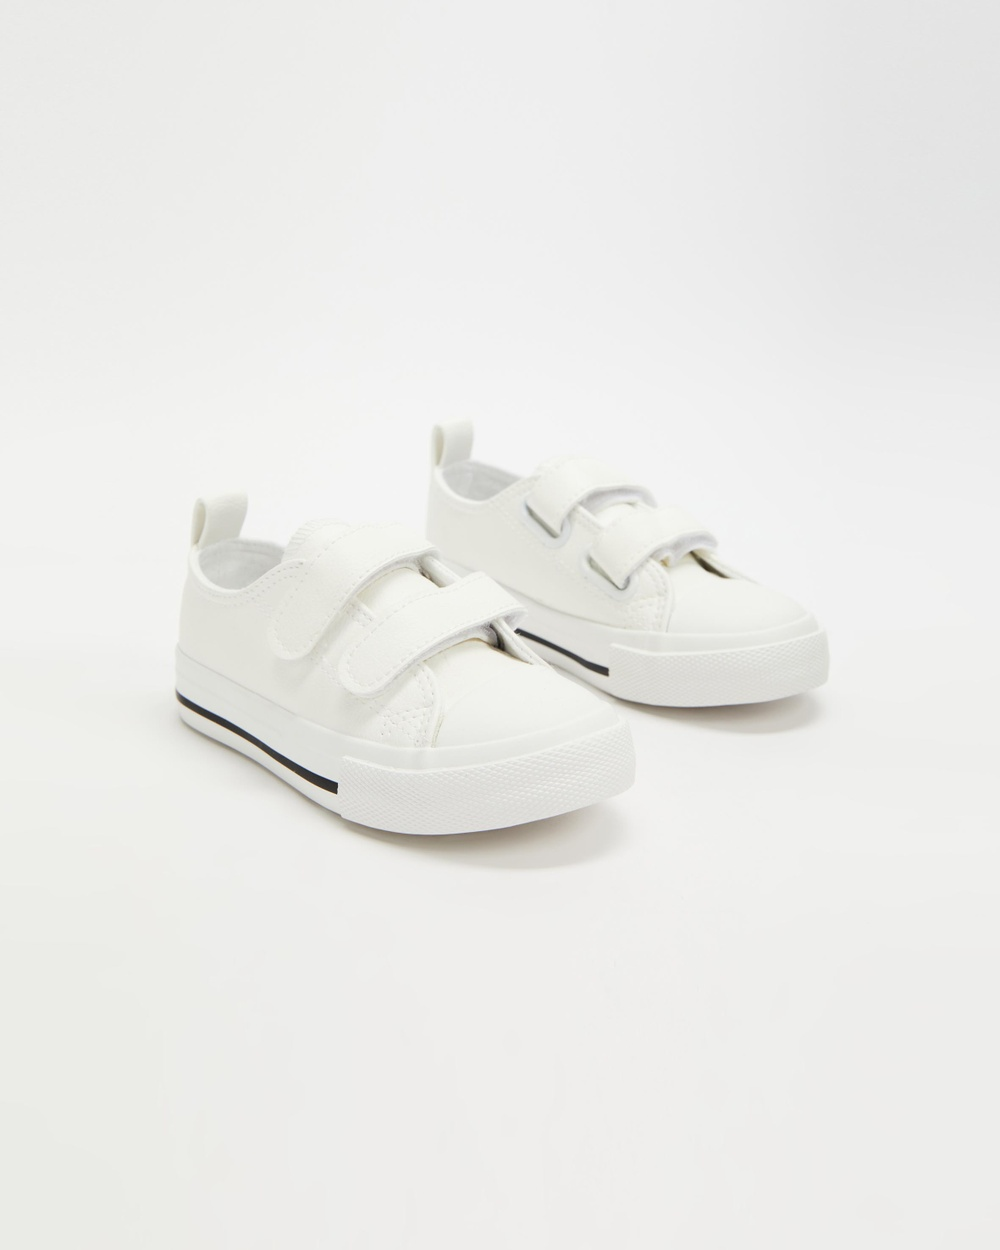 Cotton On Kids Classic Double Strap Trainers Slip-On Sneakers White Smooth